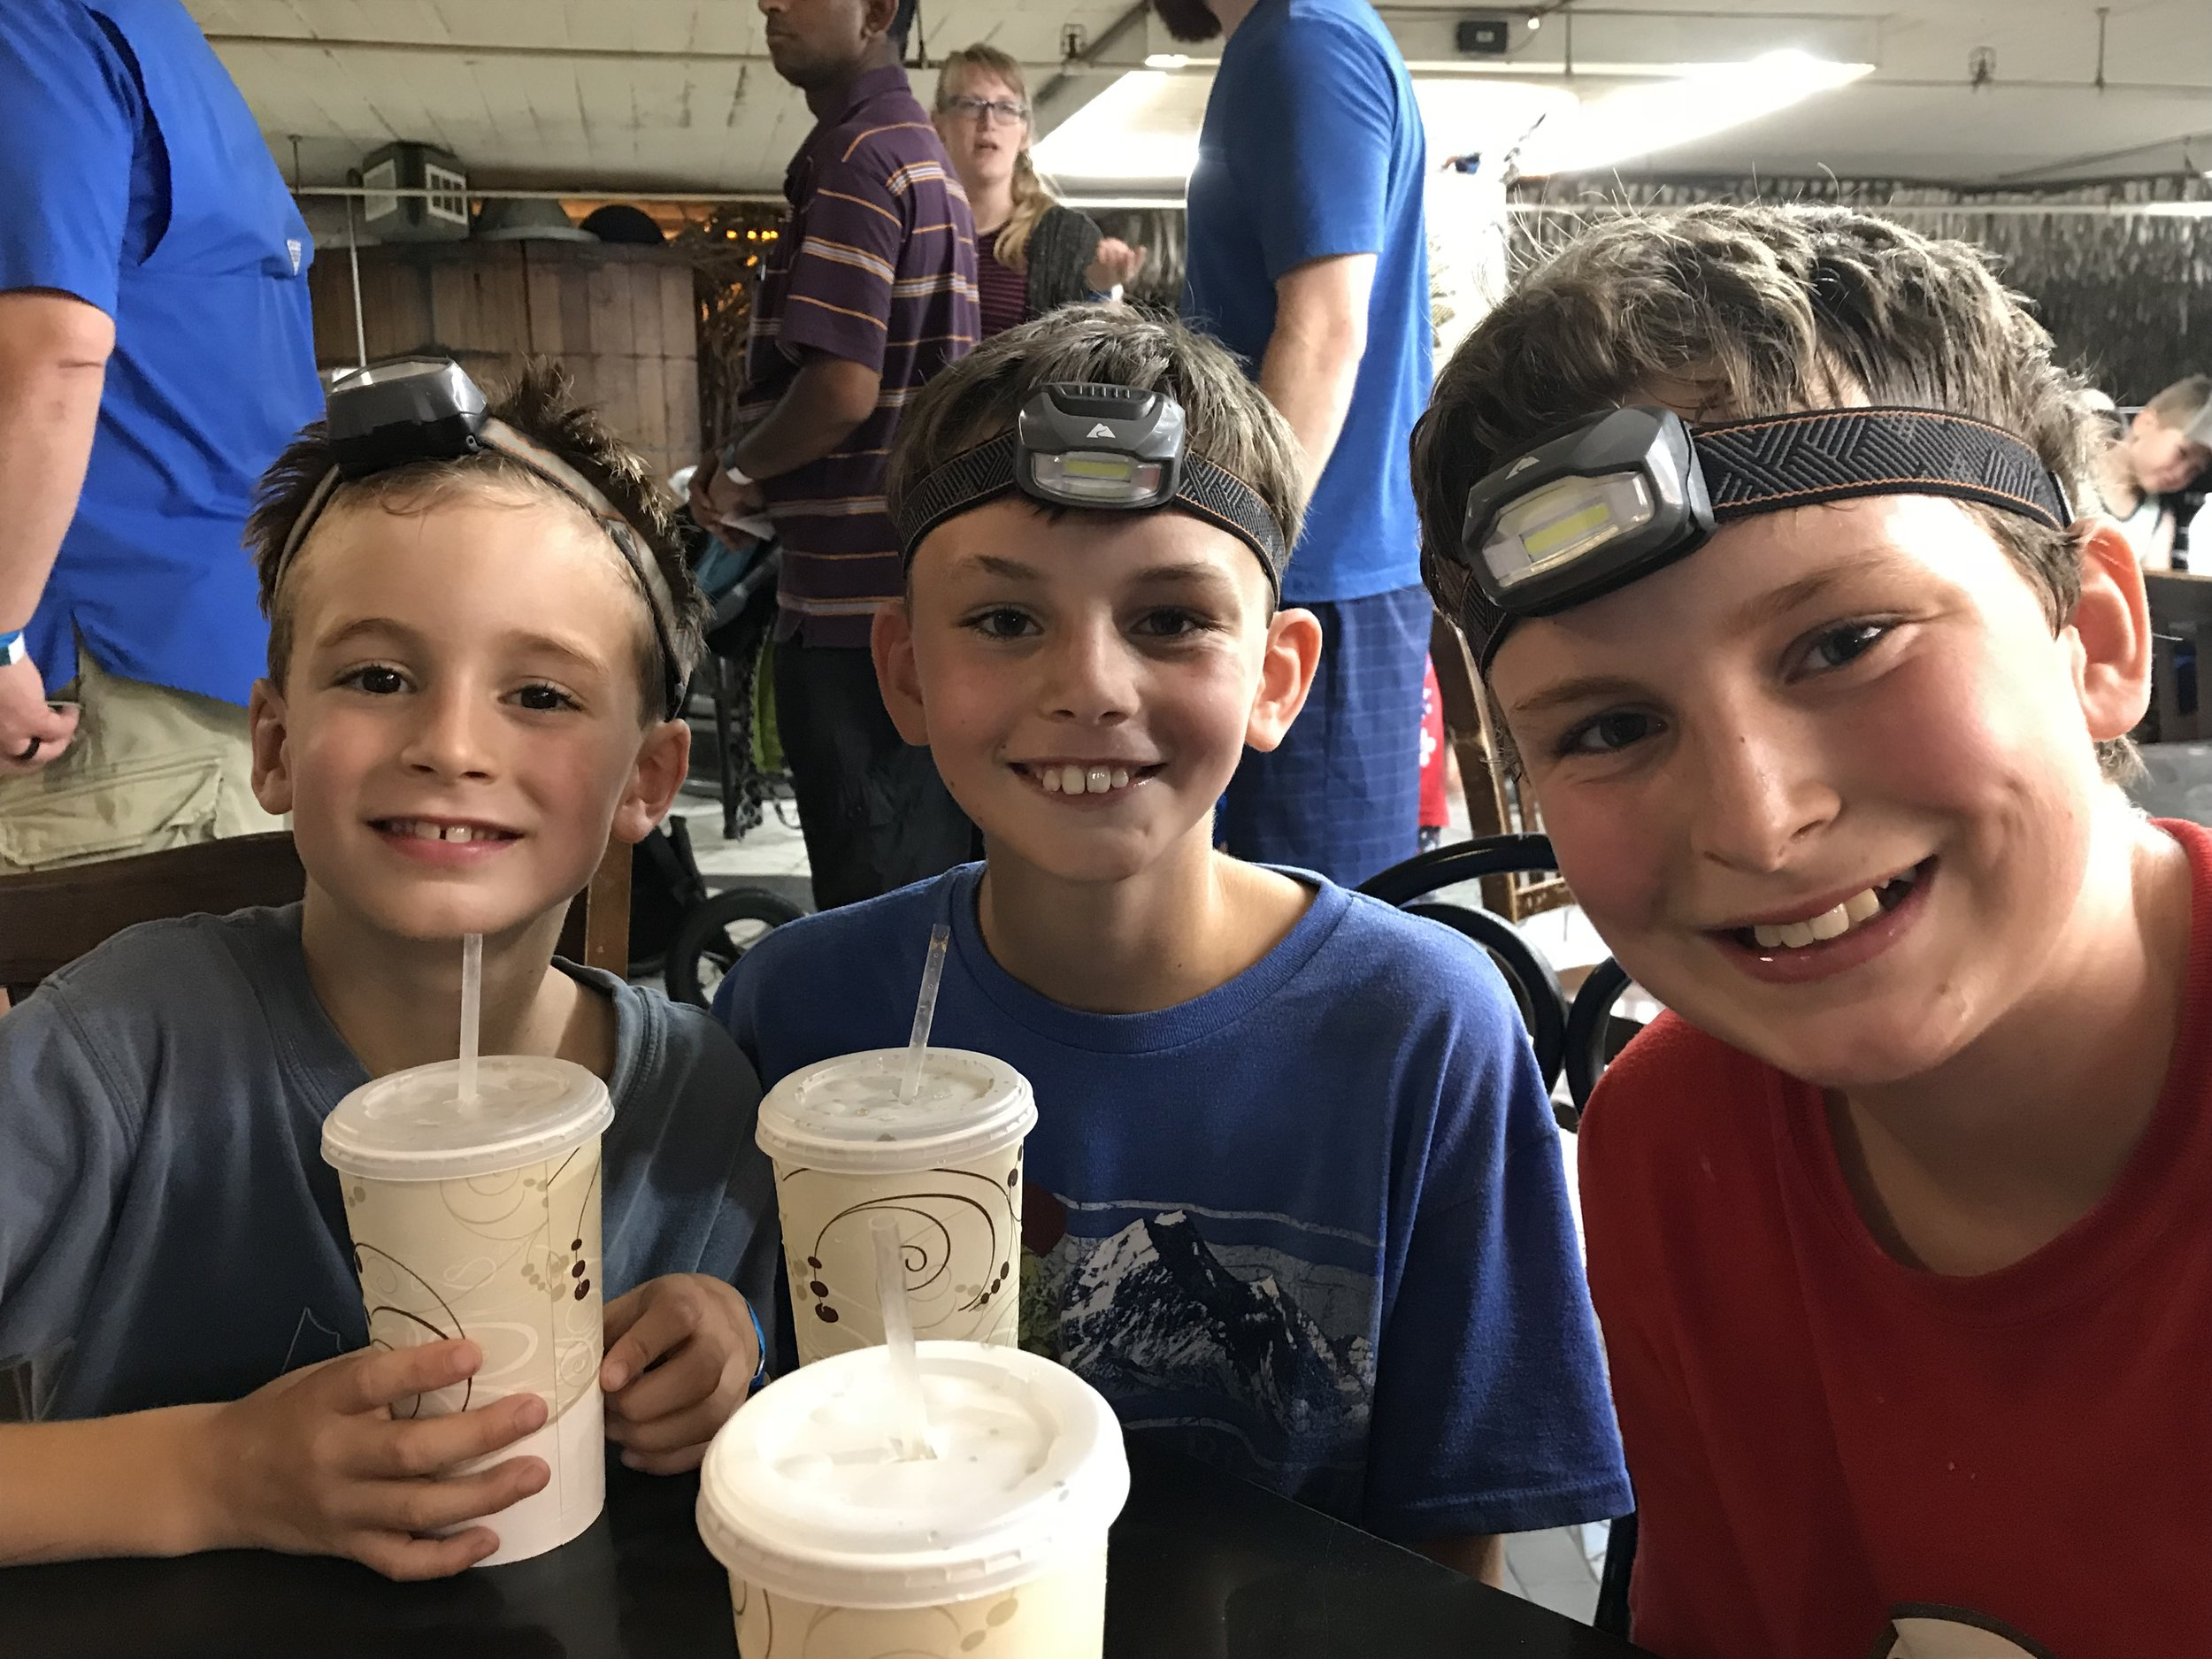 Three sweaty, but very happy boys taking a rest after exploring the caves, tunnels, slides, and secret passageways at City Museum. How convenient that headlamps were already a part of our gear!